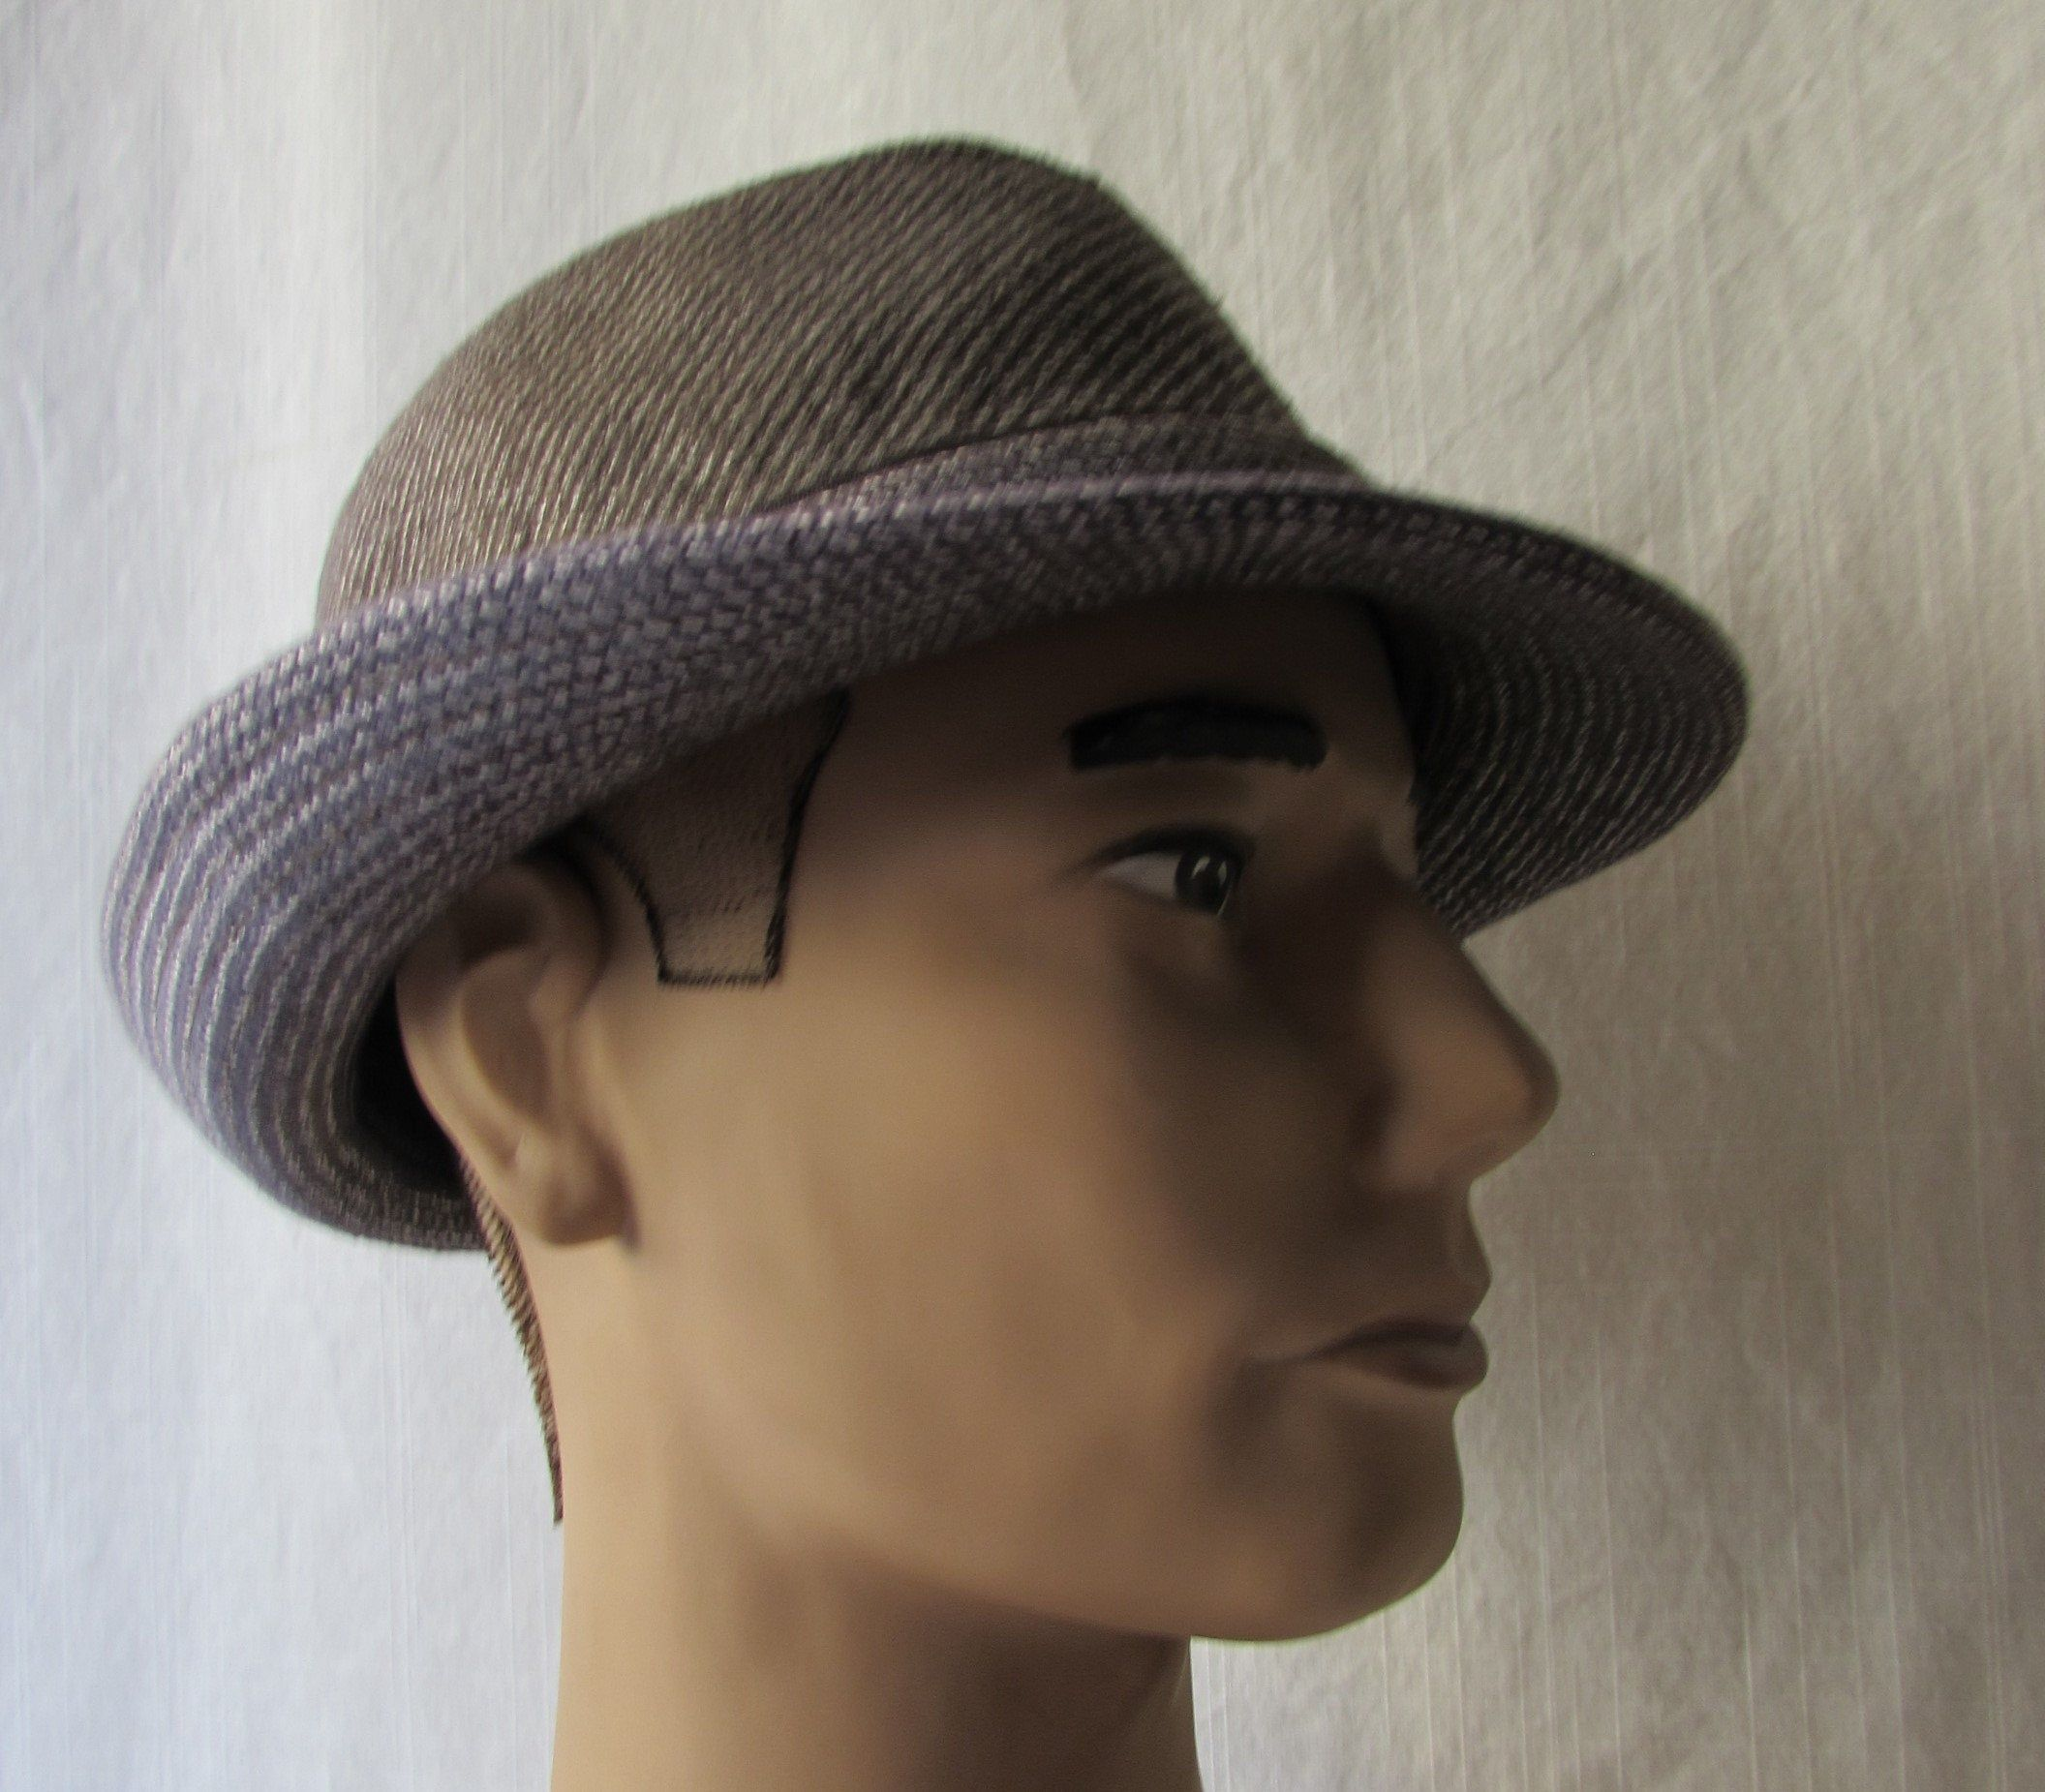 Photo of HAT Fedora size L/XL Brown tweed fully lined UBI hats Rocker Photo Shoot